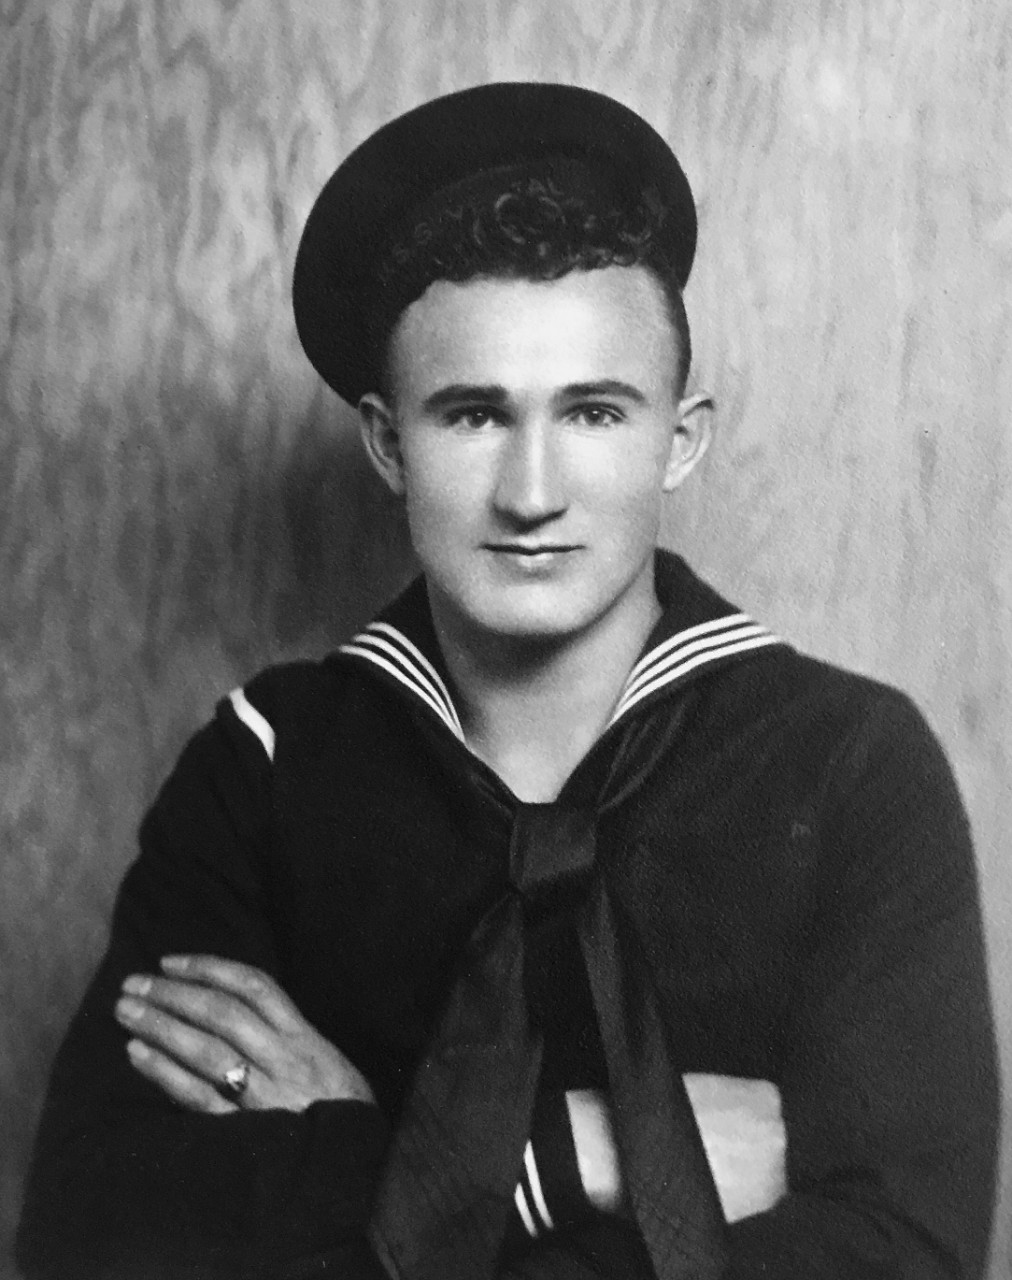 An undated photo of Lt. j.g. Aloysius H. Schmitt who was killed during the Japanese attack on Pearl Harbor Dec. 7, 1941.  (Photo Courtesy of Loras College/Released)